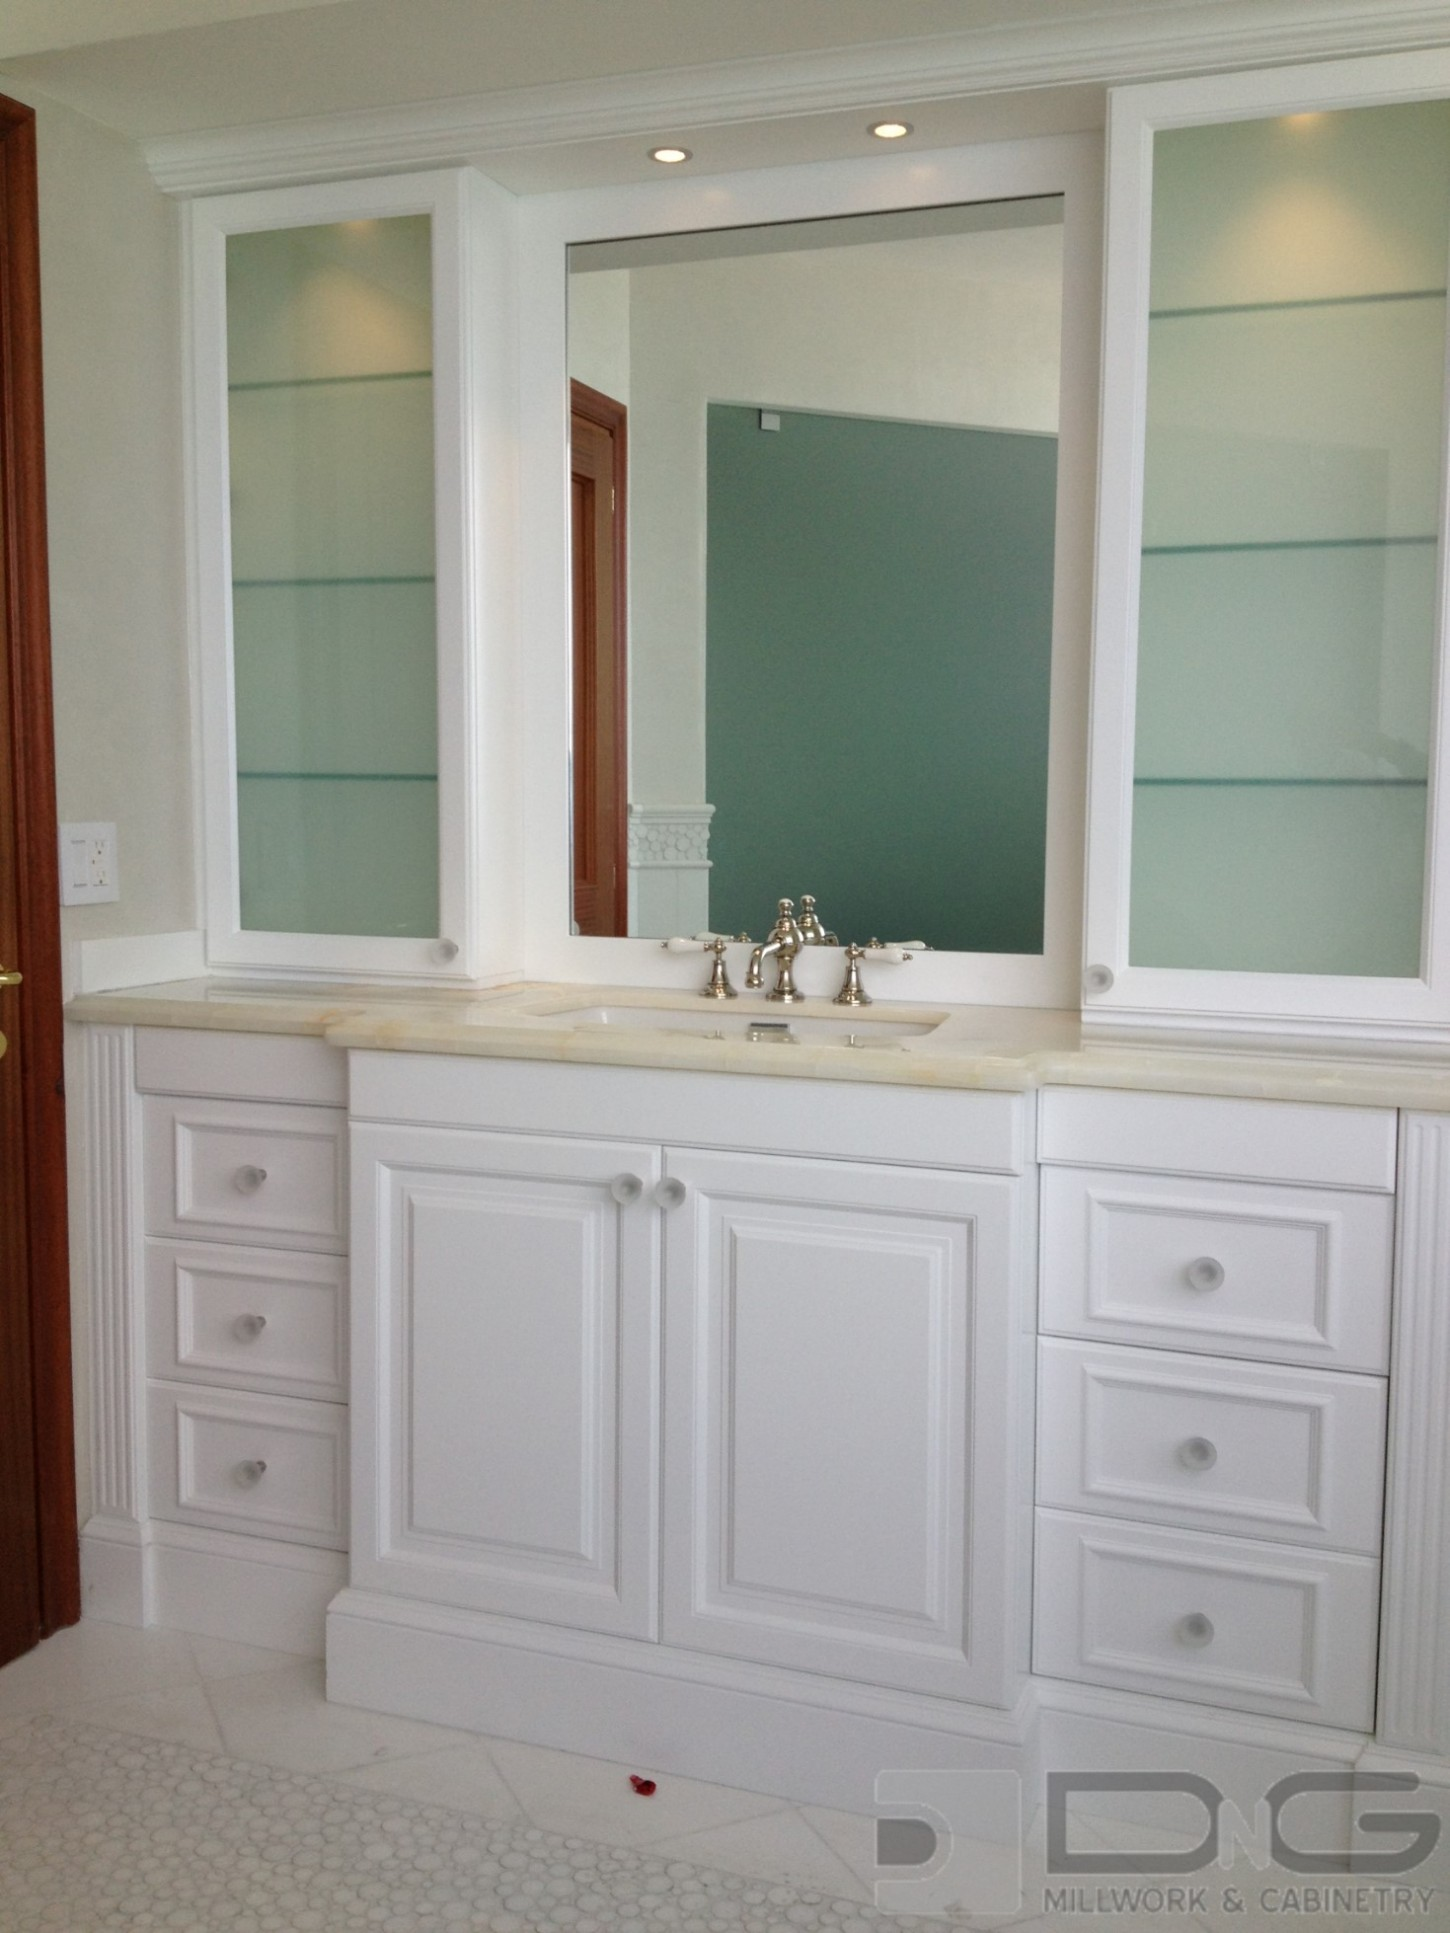 Bathroom Storage Ideas Dng Millwork Miami